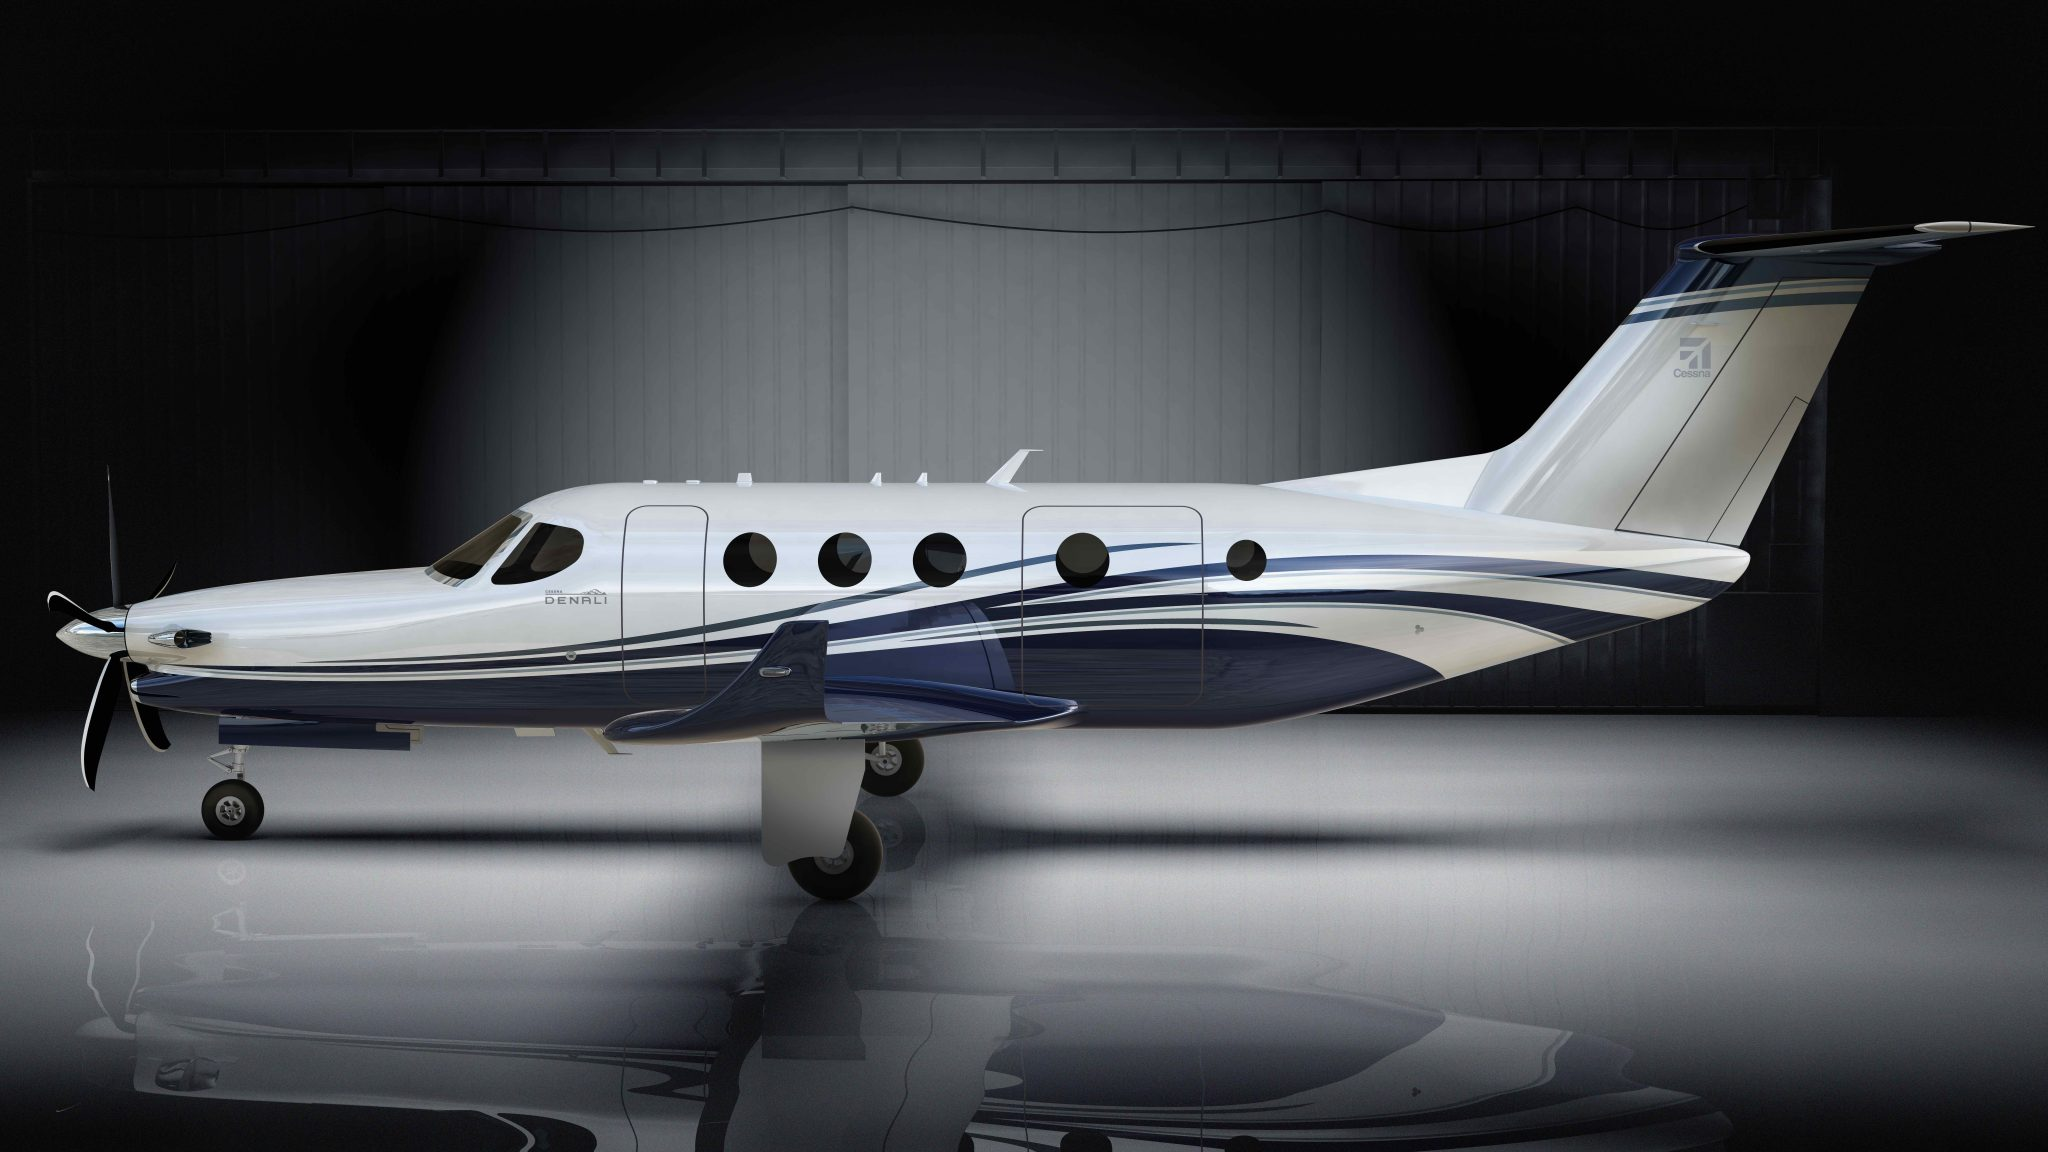 The Cessna Denali aircraft. Image via Textron Aviation.